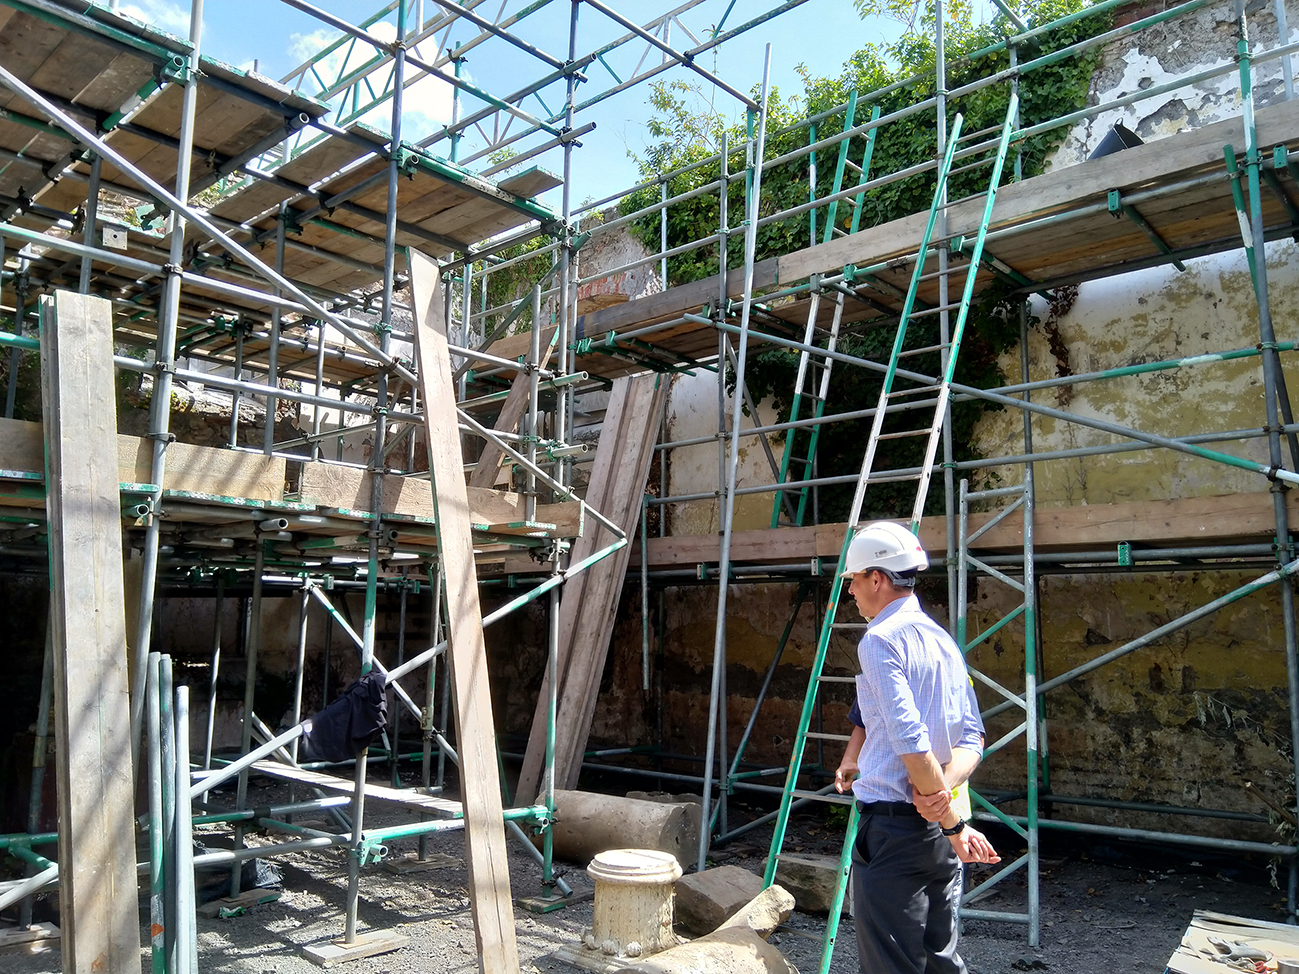 Repairs to the roof of the Whitfield Tabernacle are expected to take until autumn